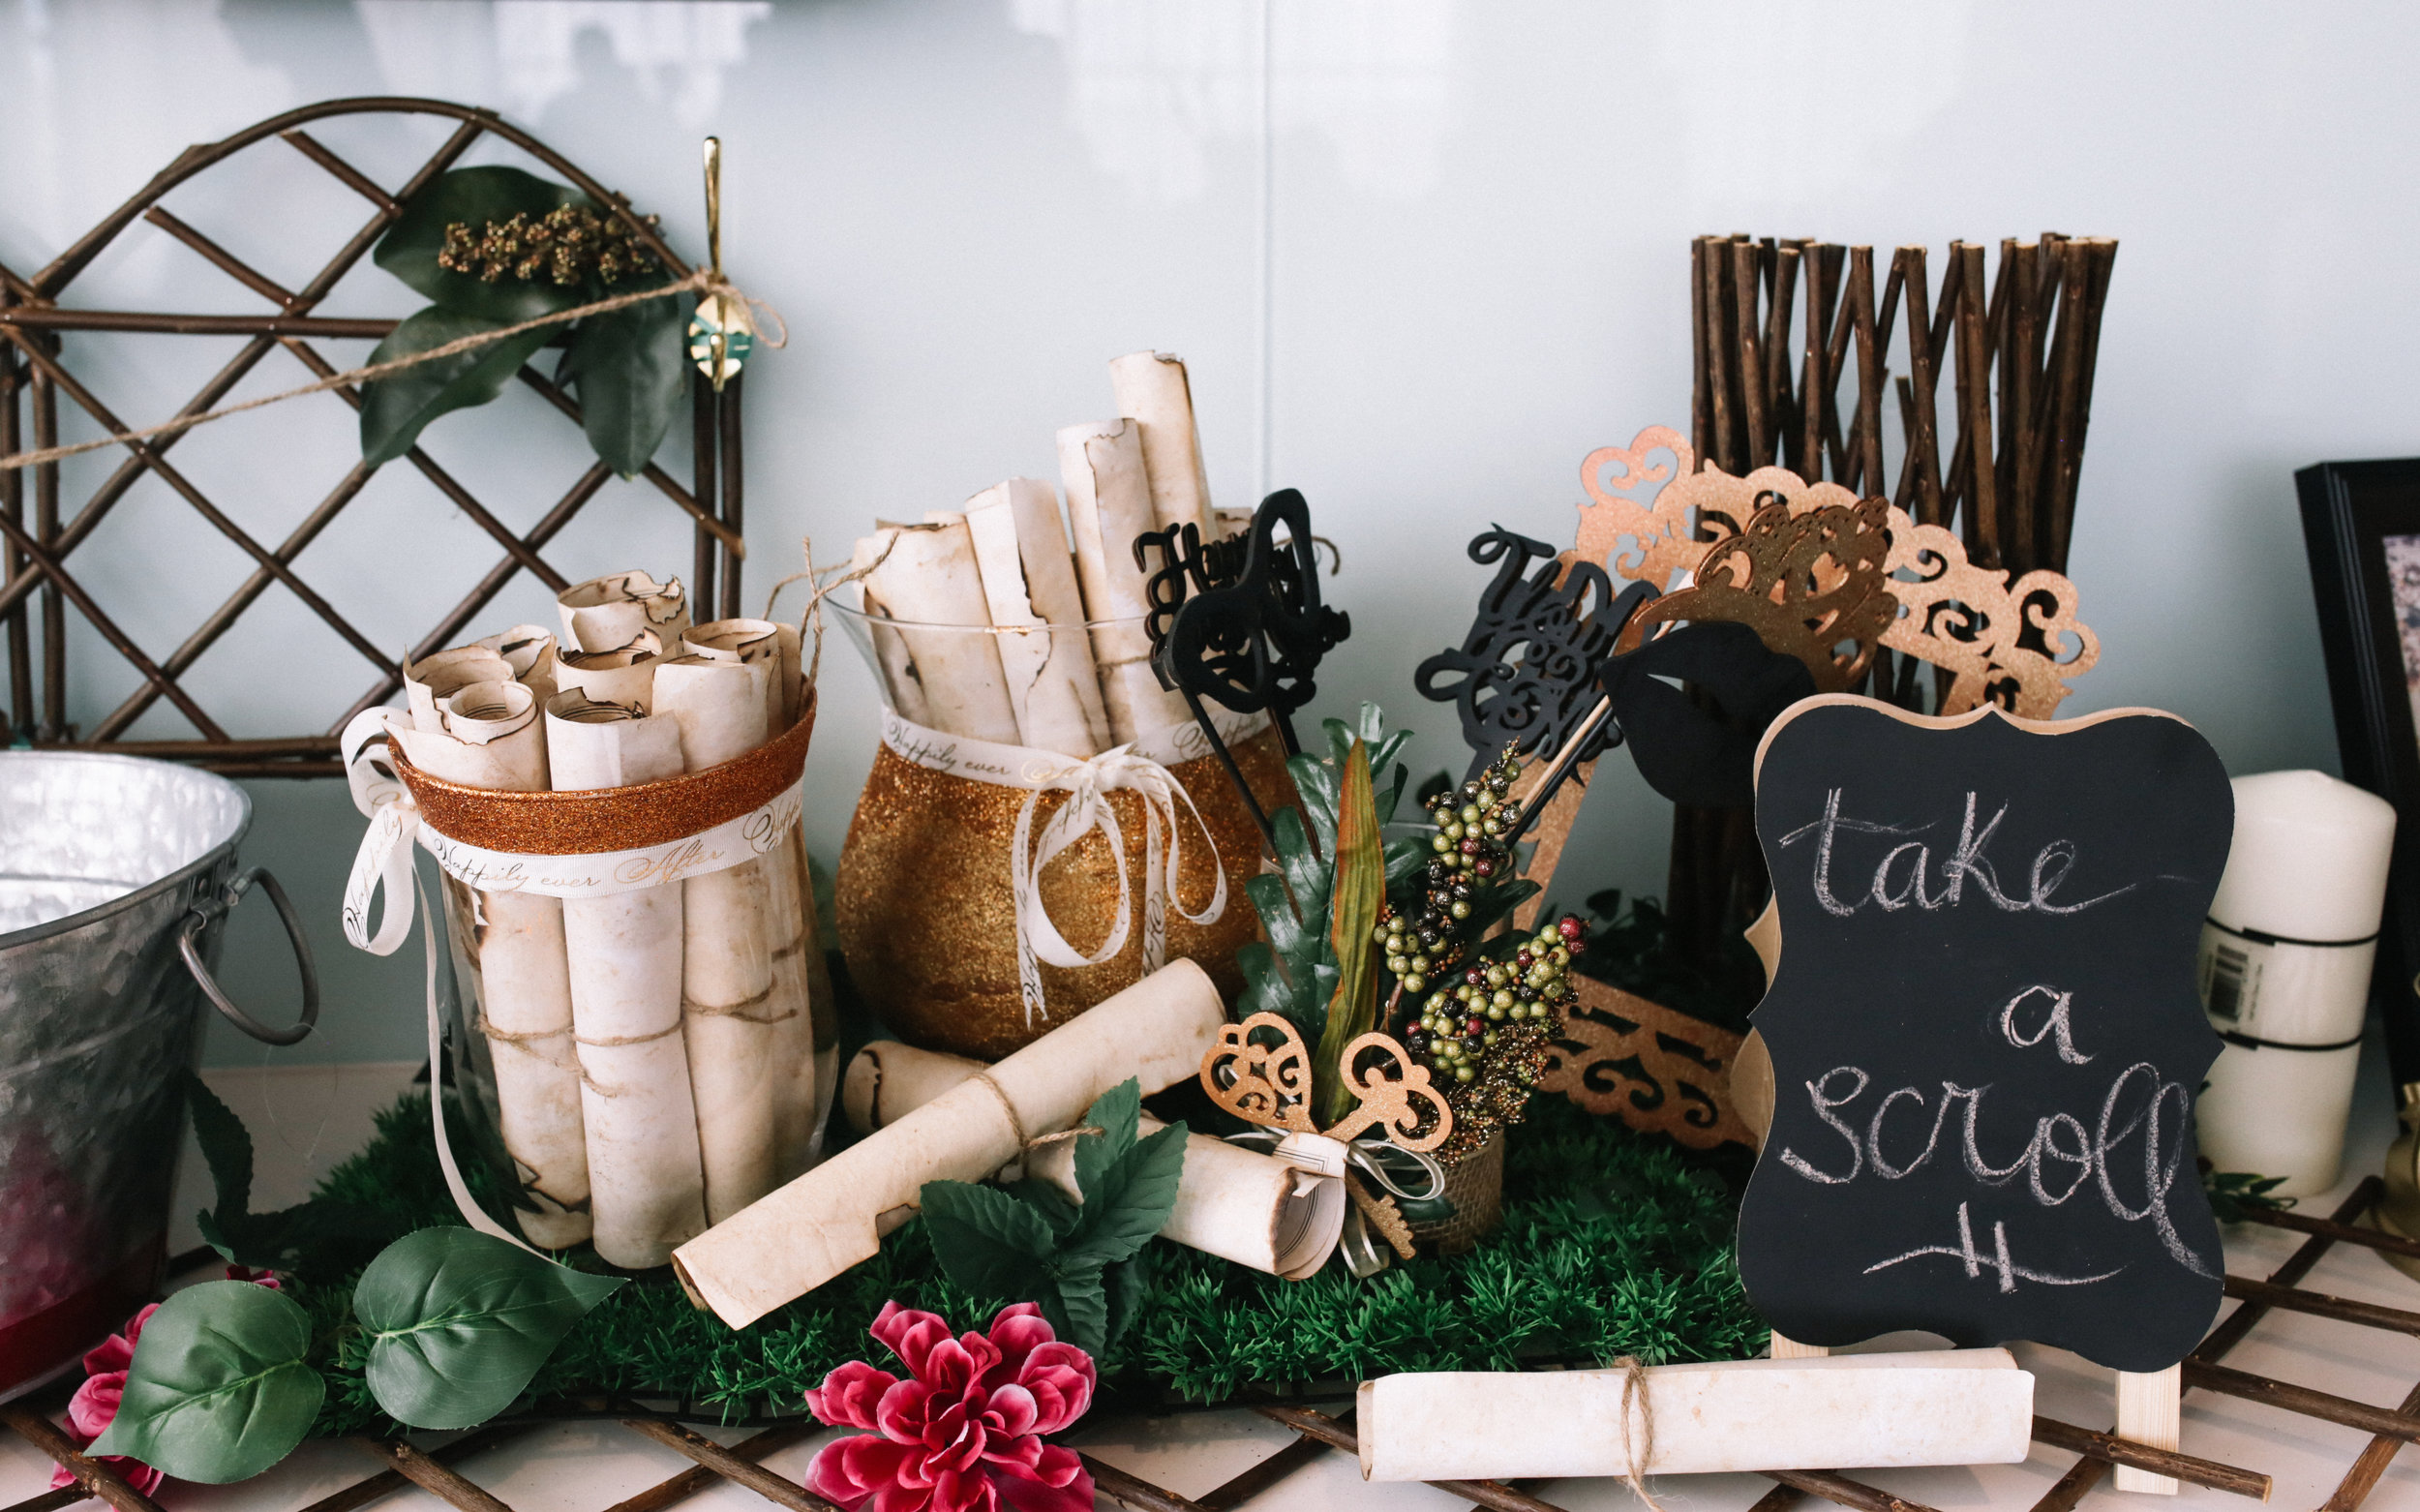 Take a scroll at wedding event